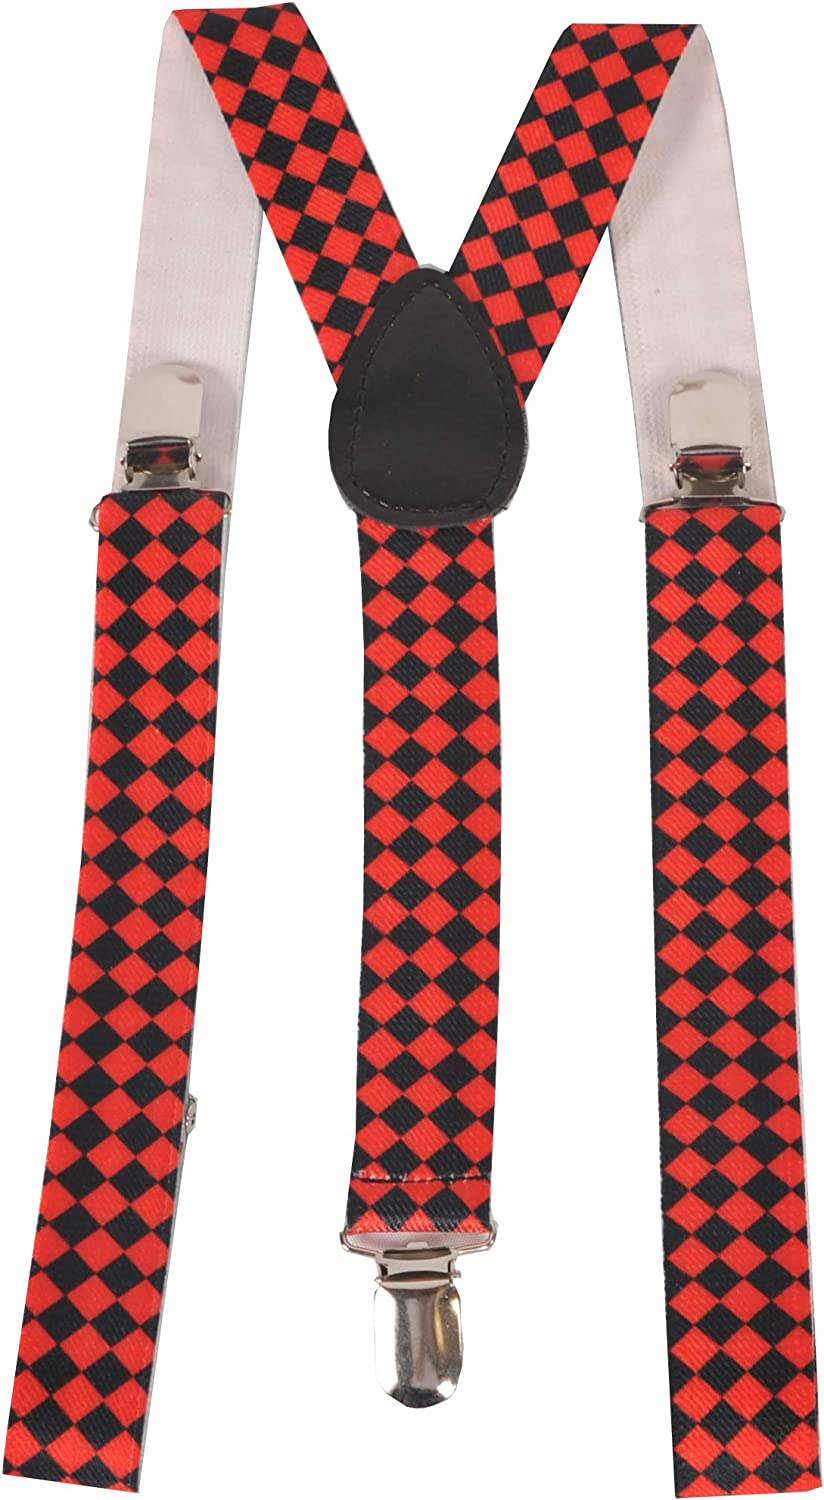 Dress-Up-America Suspenders for Adults - Party Suspenders - Y Back Adjustable Suspenders for Men, Women, and Teens (Red Checkered - Wide)